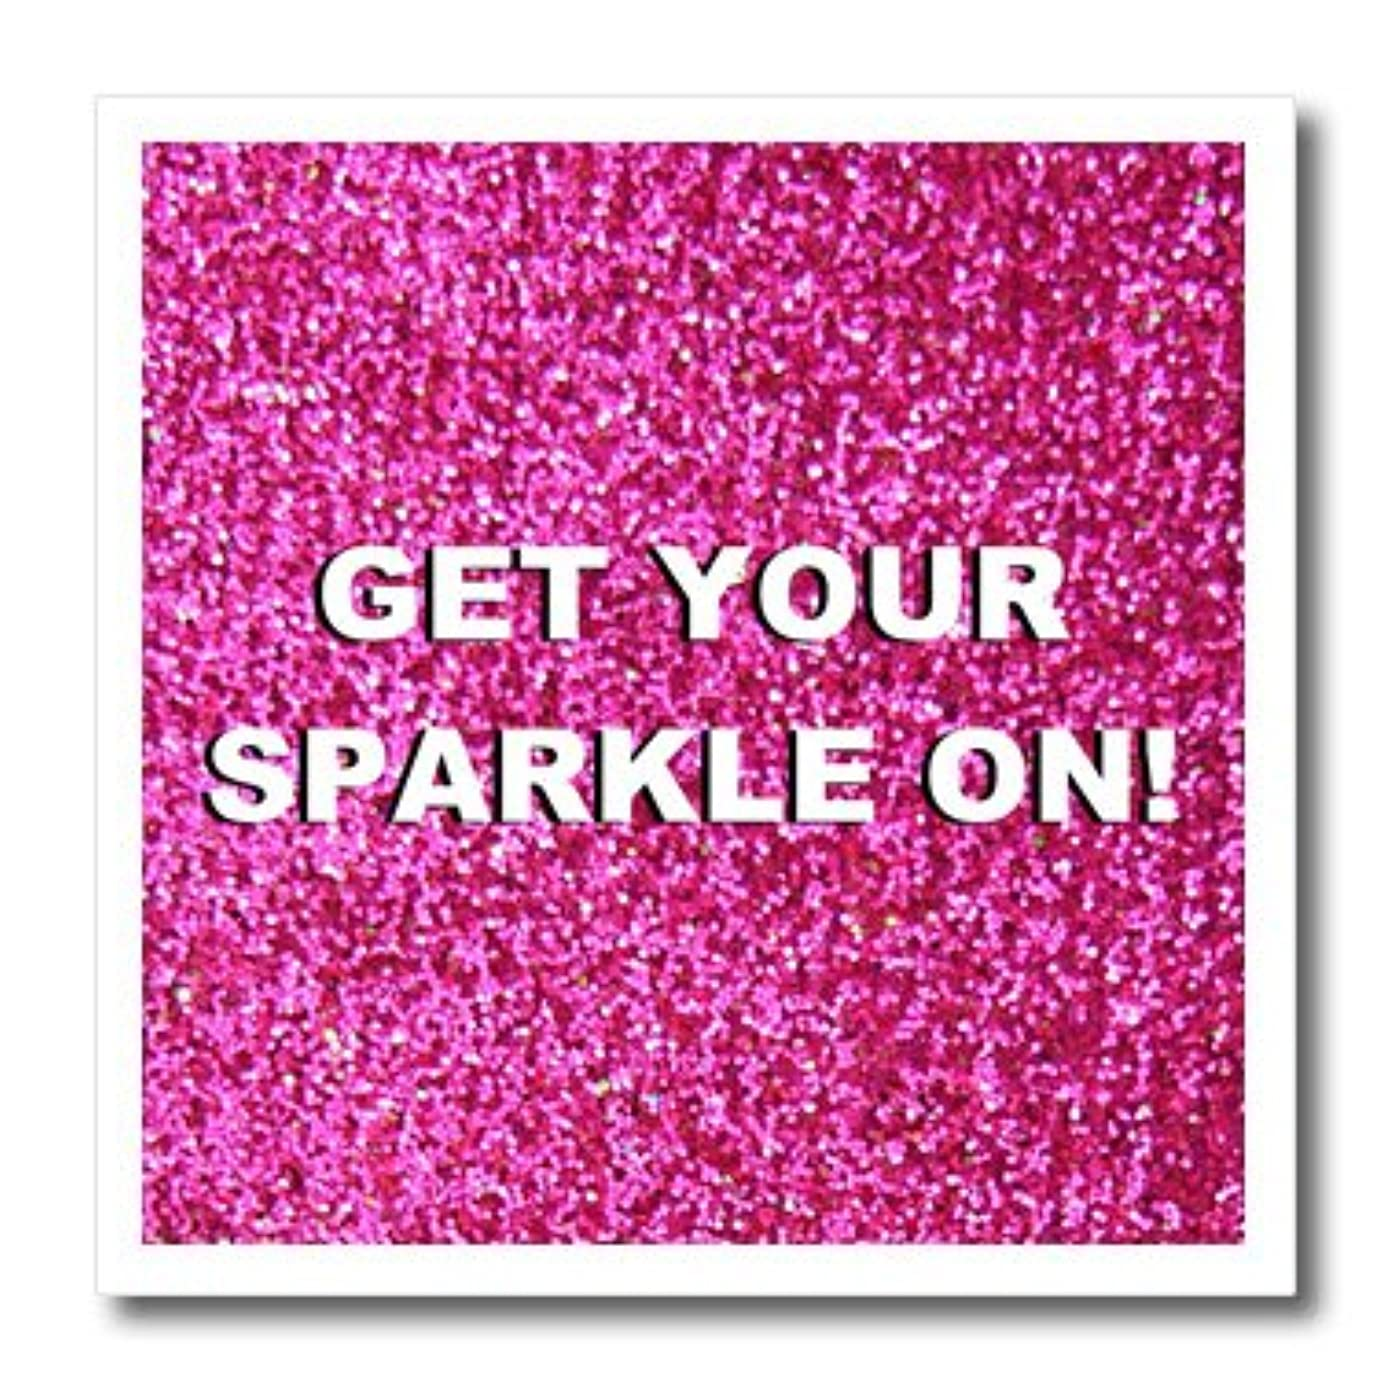 3dRose ht_112890_2 Get Your Sparkle On-Fun Girly Pink Faux Glitter-Not Actual Glitter-Iron on Heat Transfer for White Material, 6 by 6-Inch